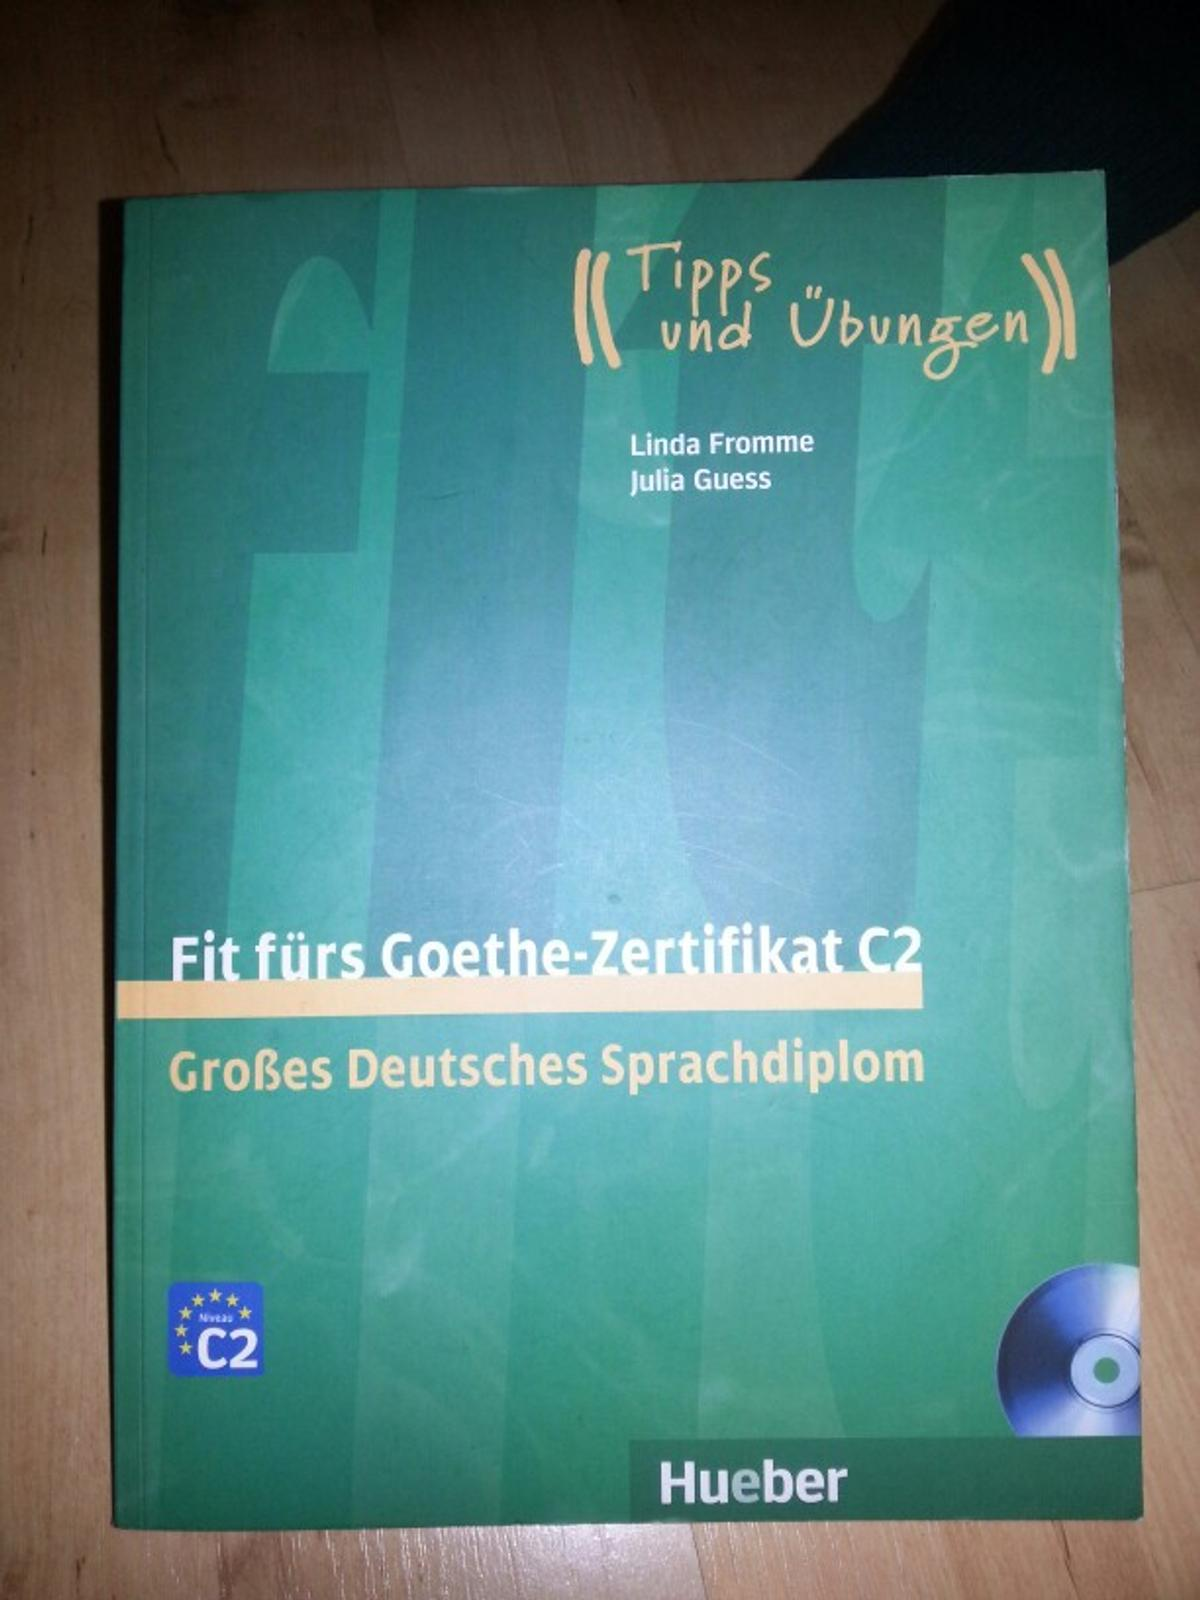 Fit Fürs Goethe Zertifikat C2 In 22143 Hamburg For 1400 For Sale